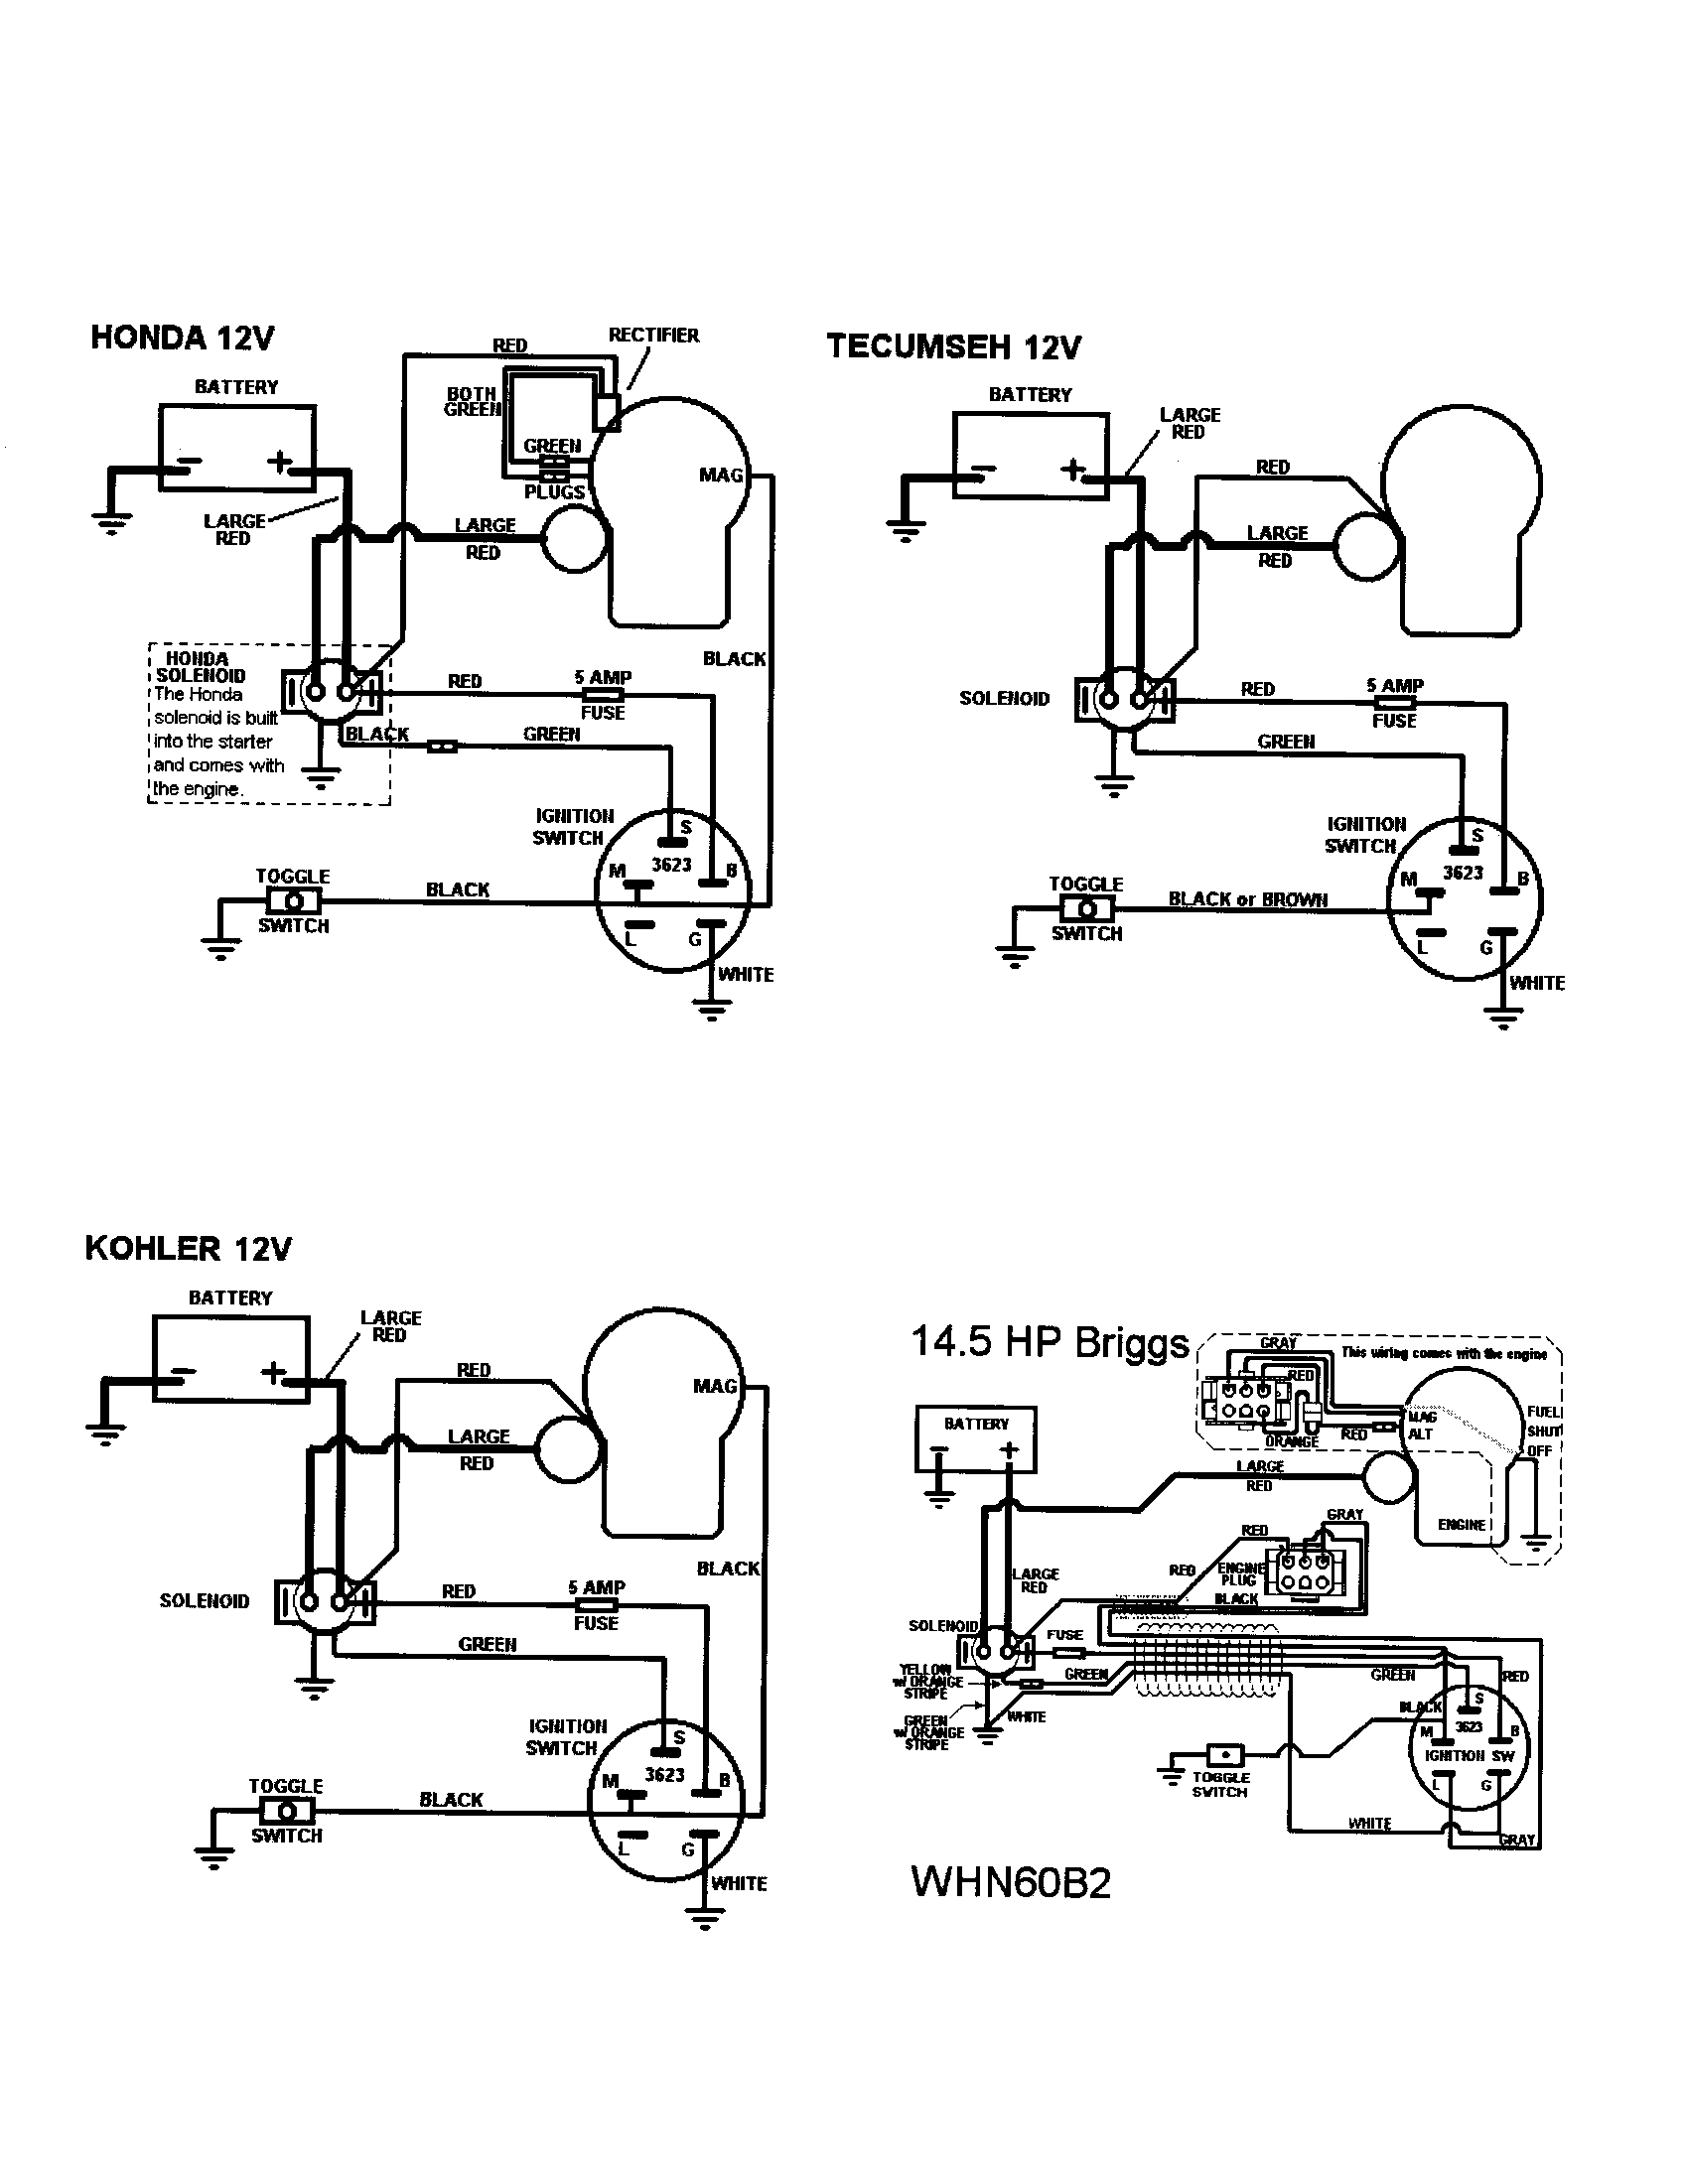 Cub Cadet Gt1554 Wiring Diagram from i1.wp.com